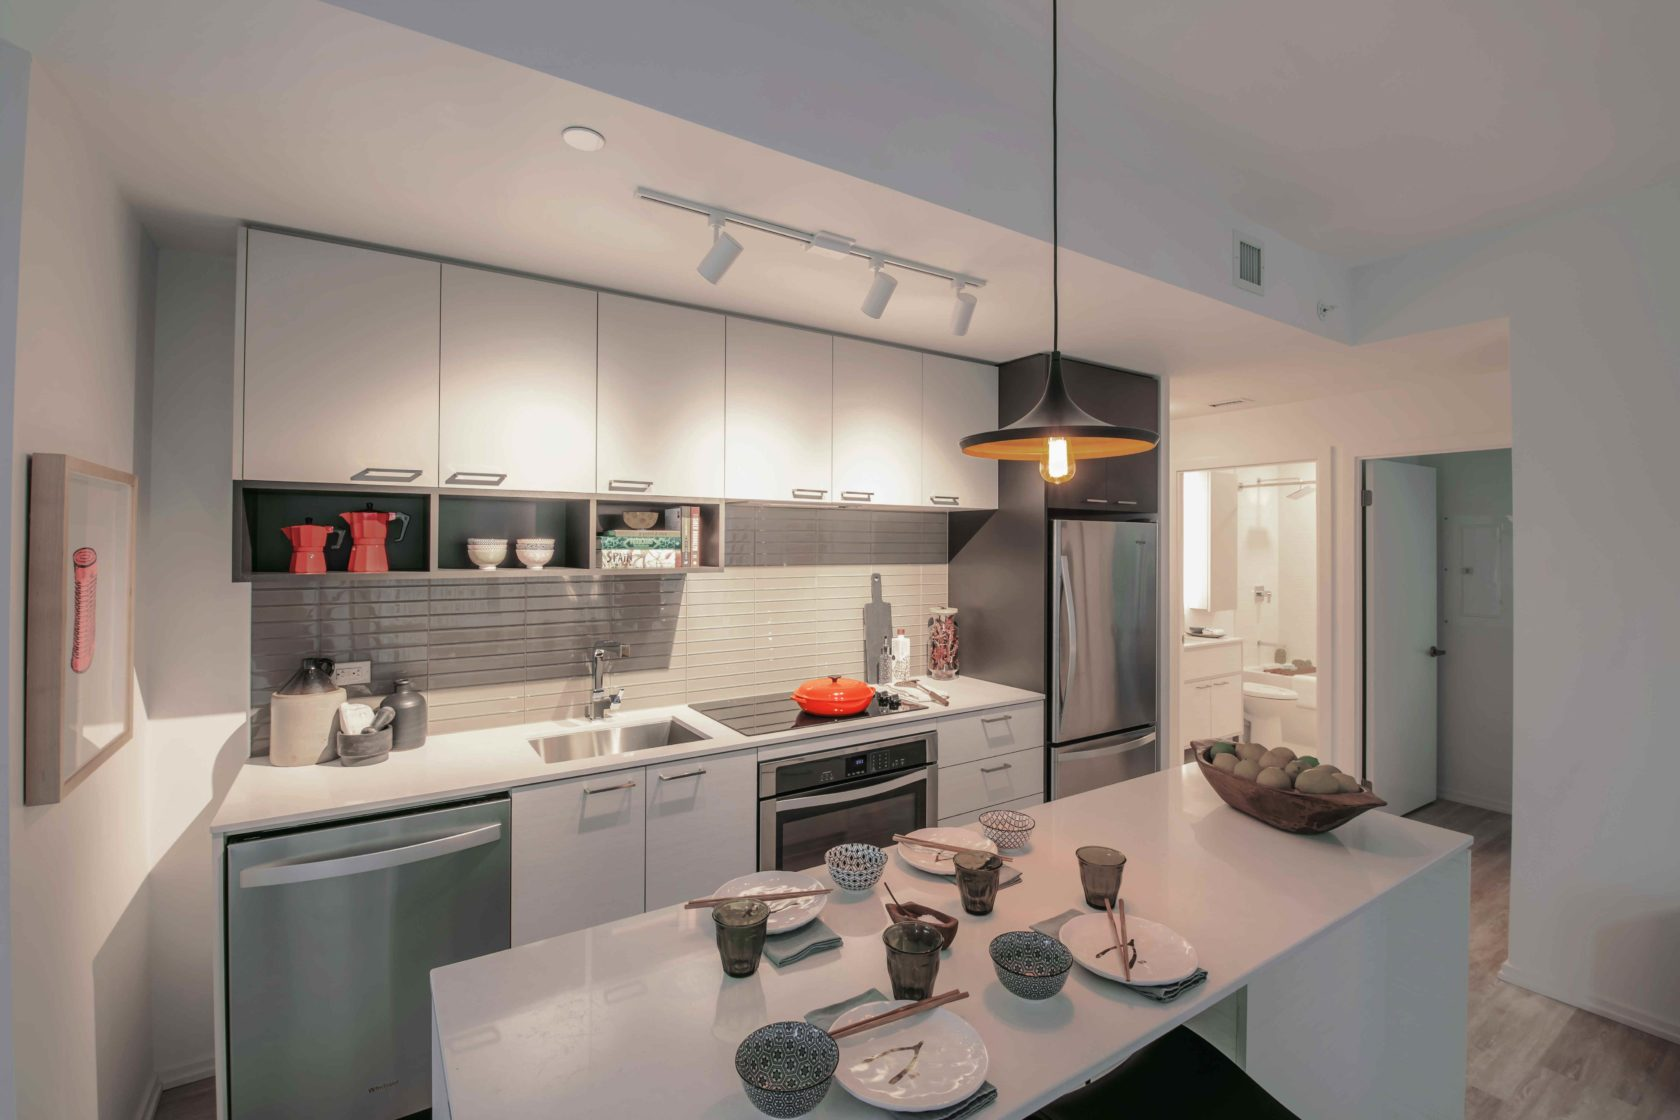 Livmore Suite kitchen and dining space